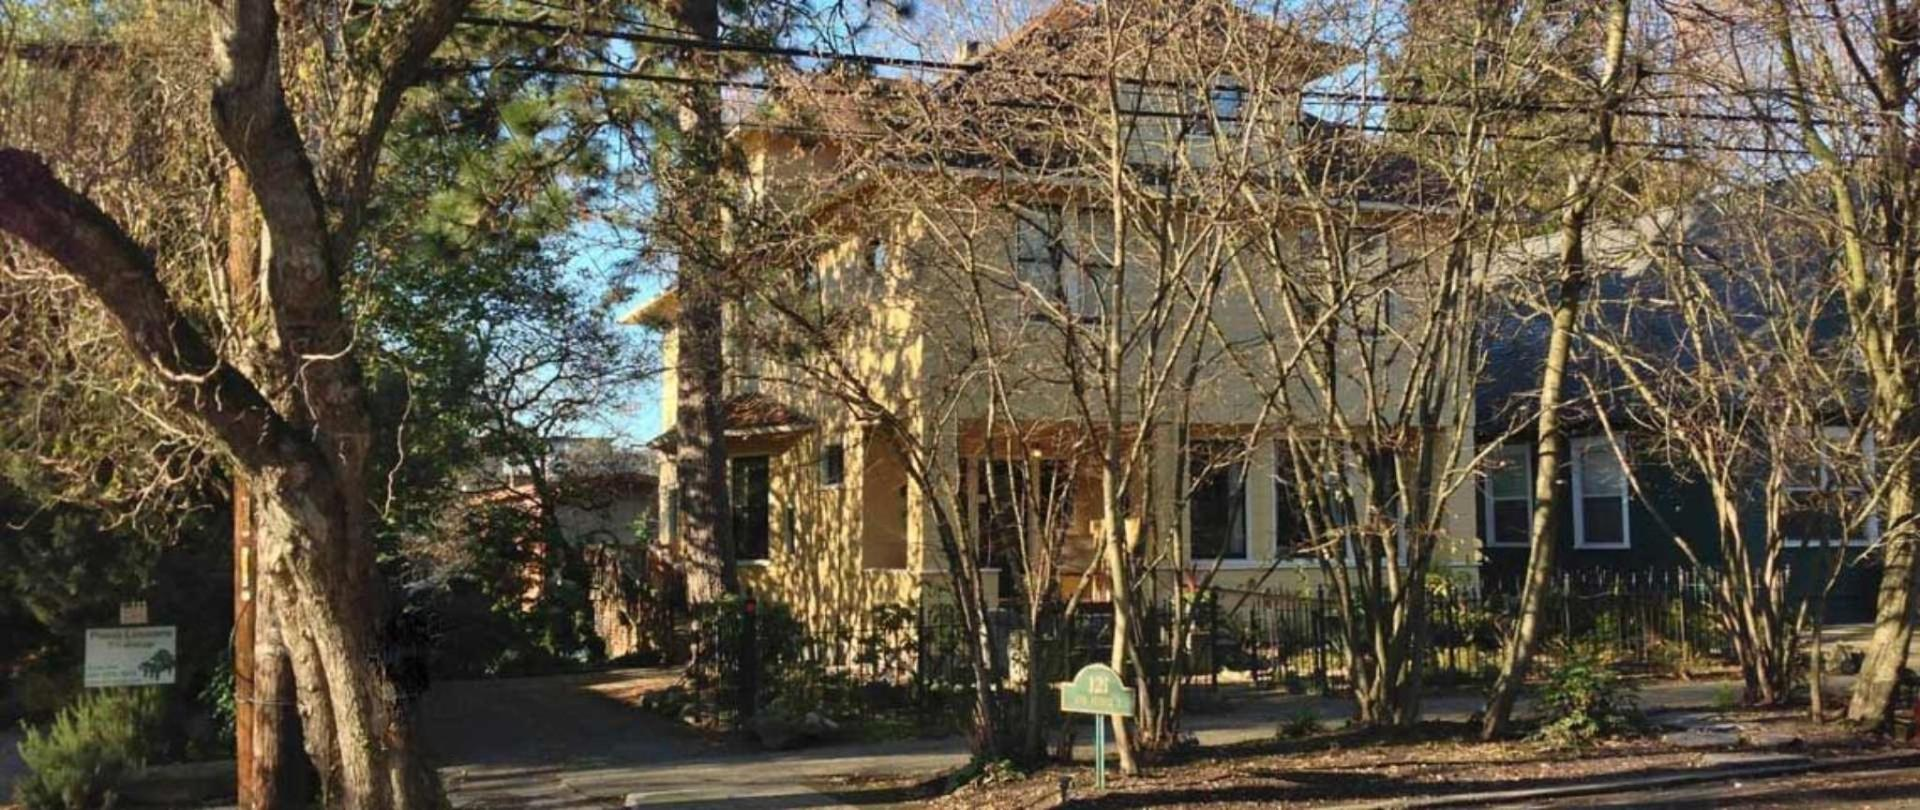 11th Avenue Inn Bed and Breakfast